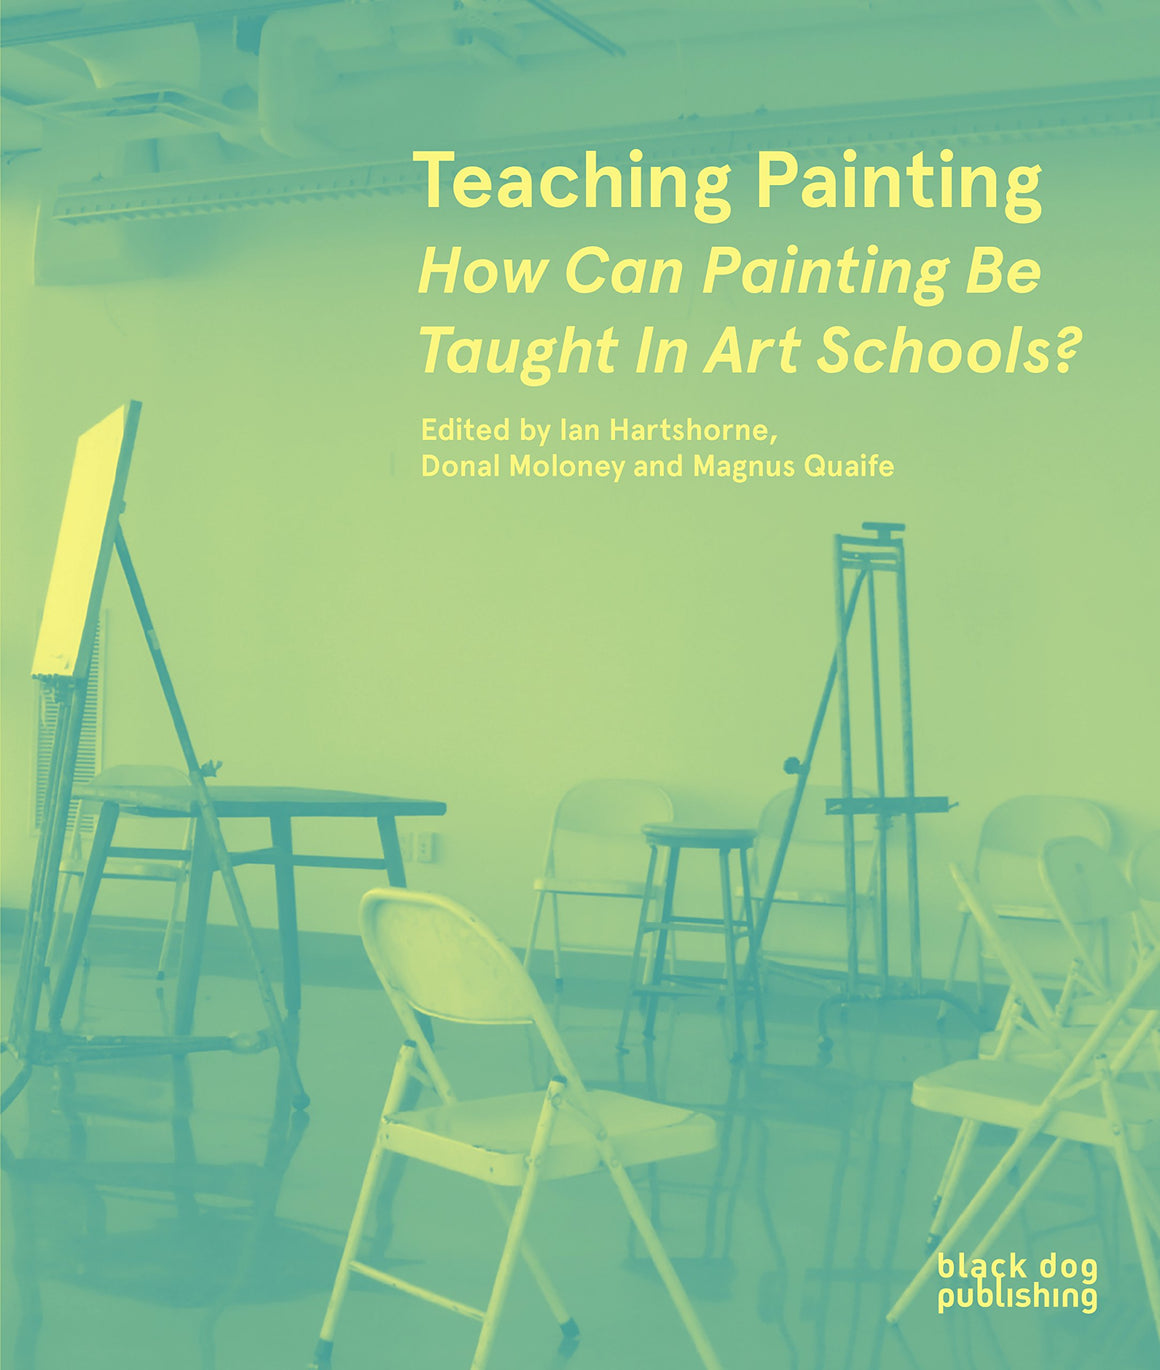 Teaching Painting: How Can Painting be Taught in Art Schools?  | Author: Ian Hartshorne